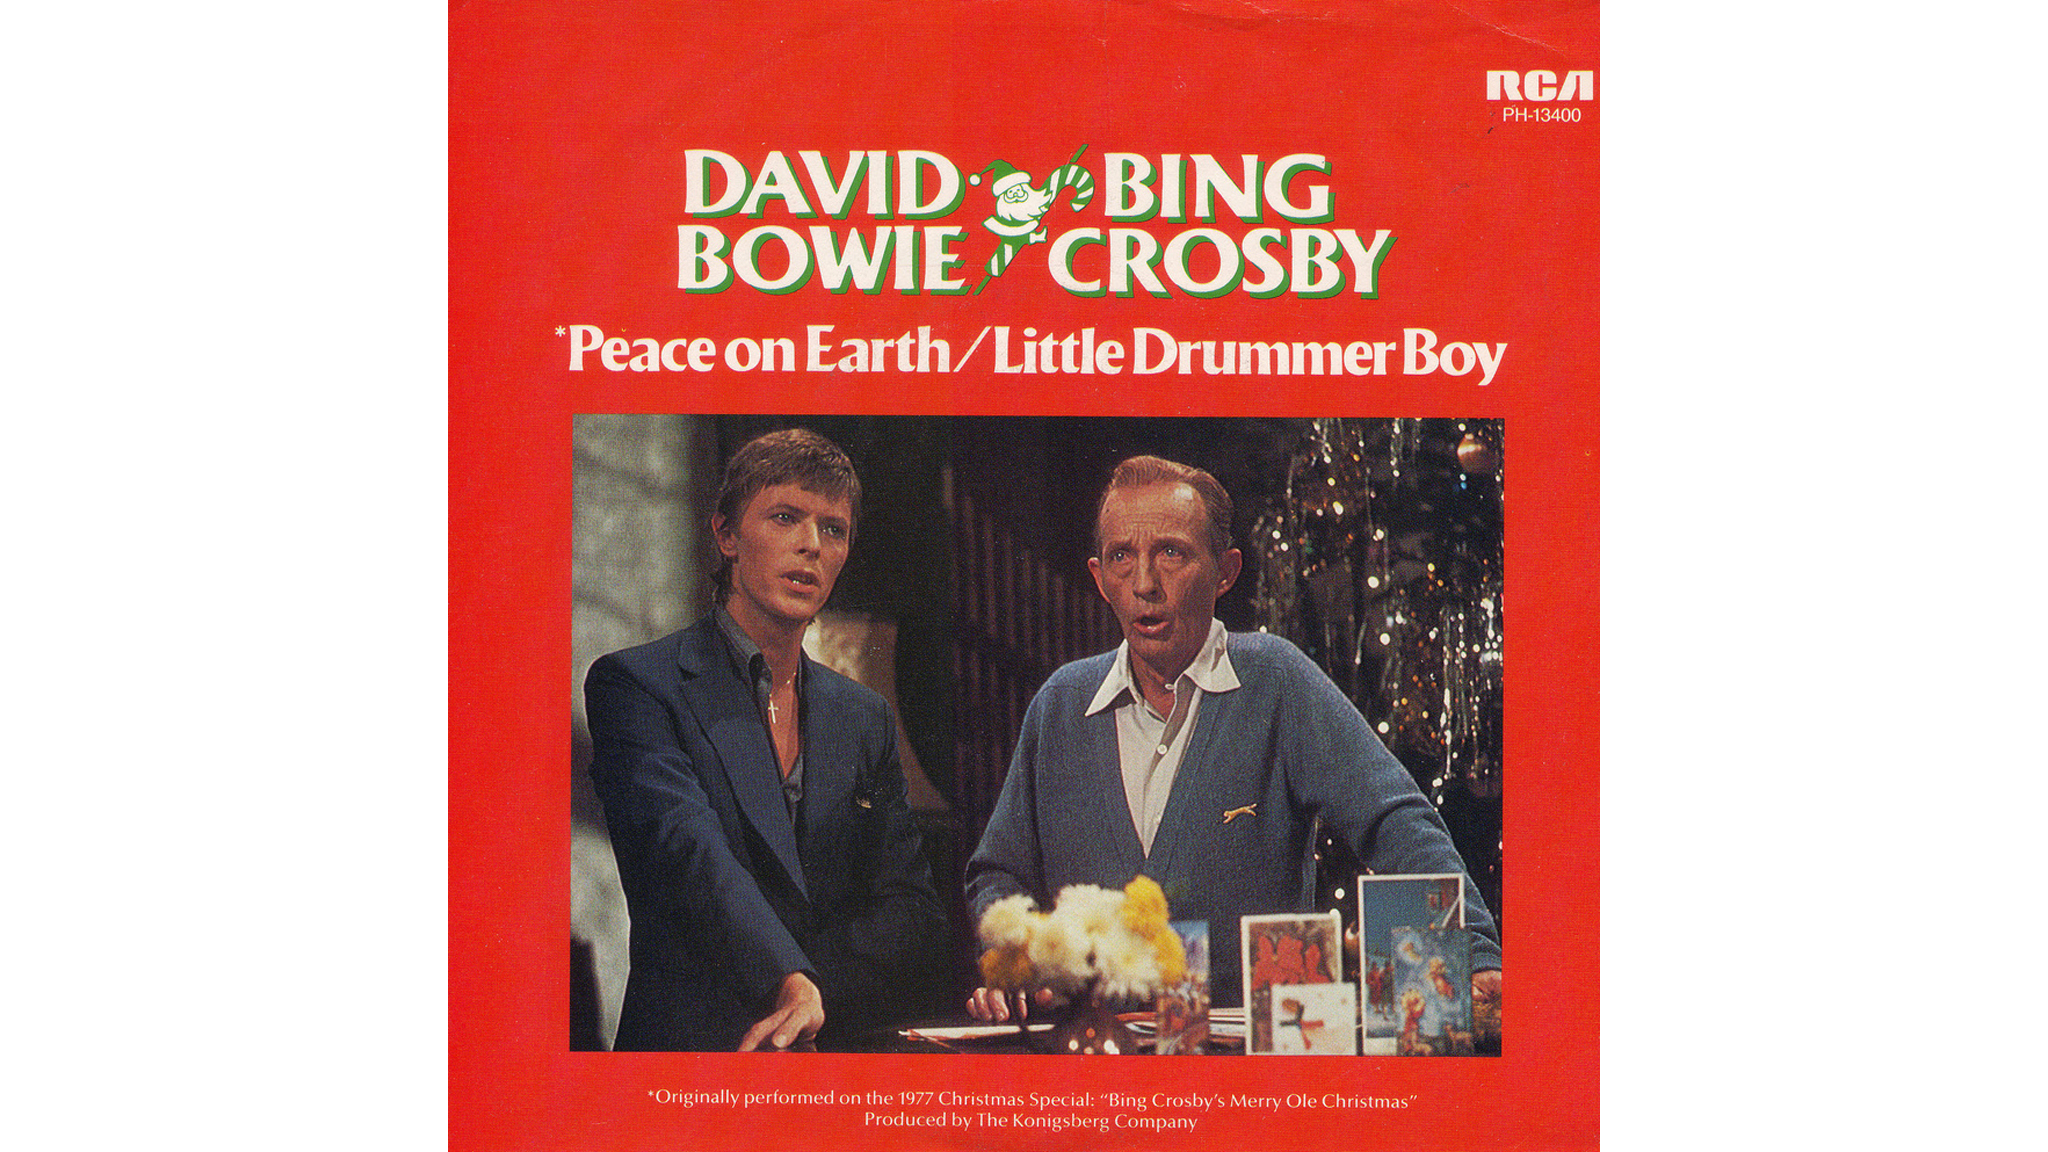 Bing Crosby and David Bowie – 'The Little Drummer Boy/Peace on Earth' artwork